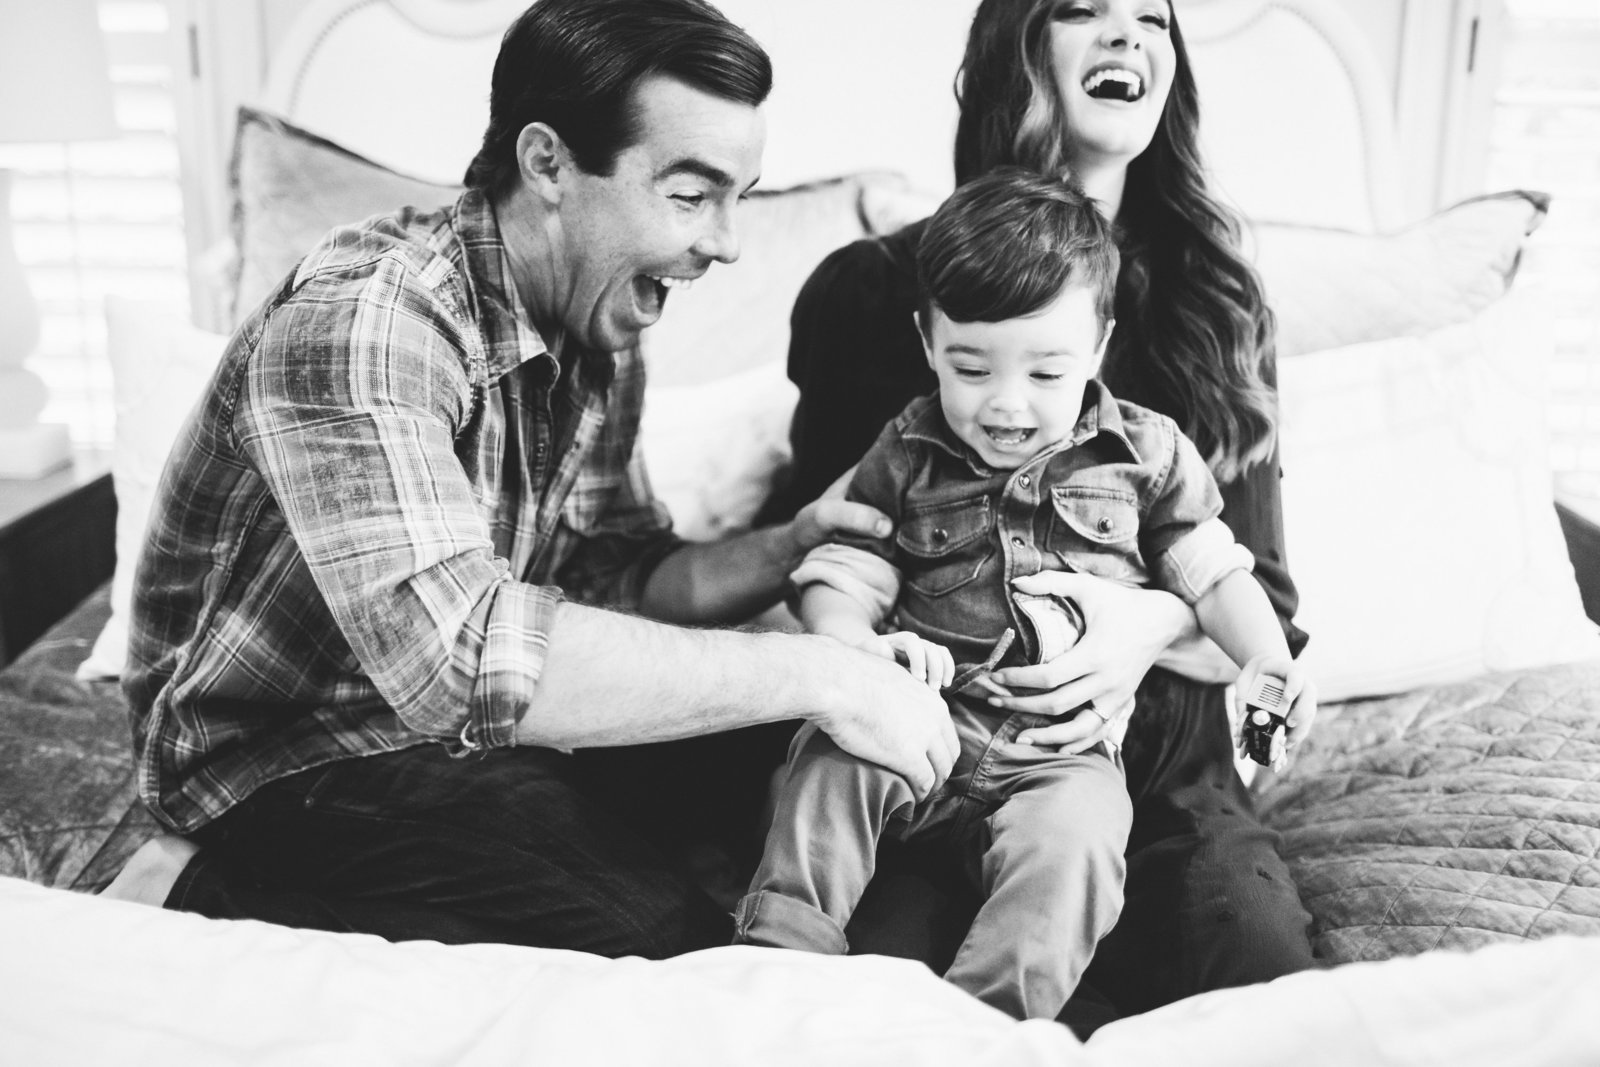 Mom and dad playing with son at home in bed